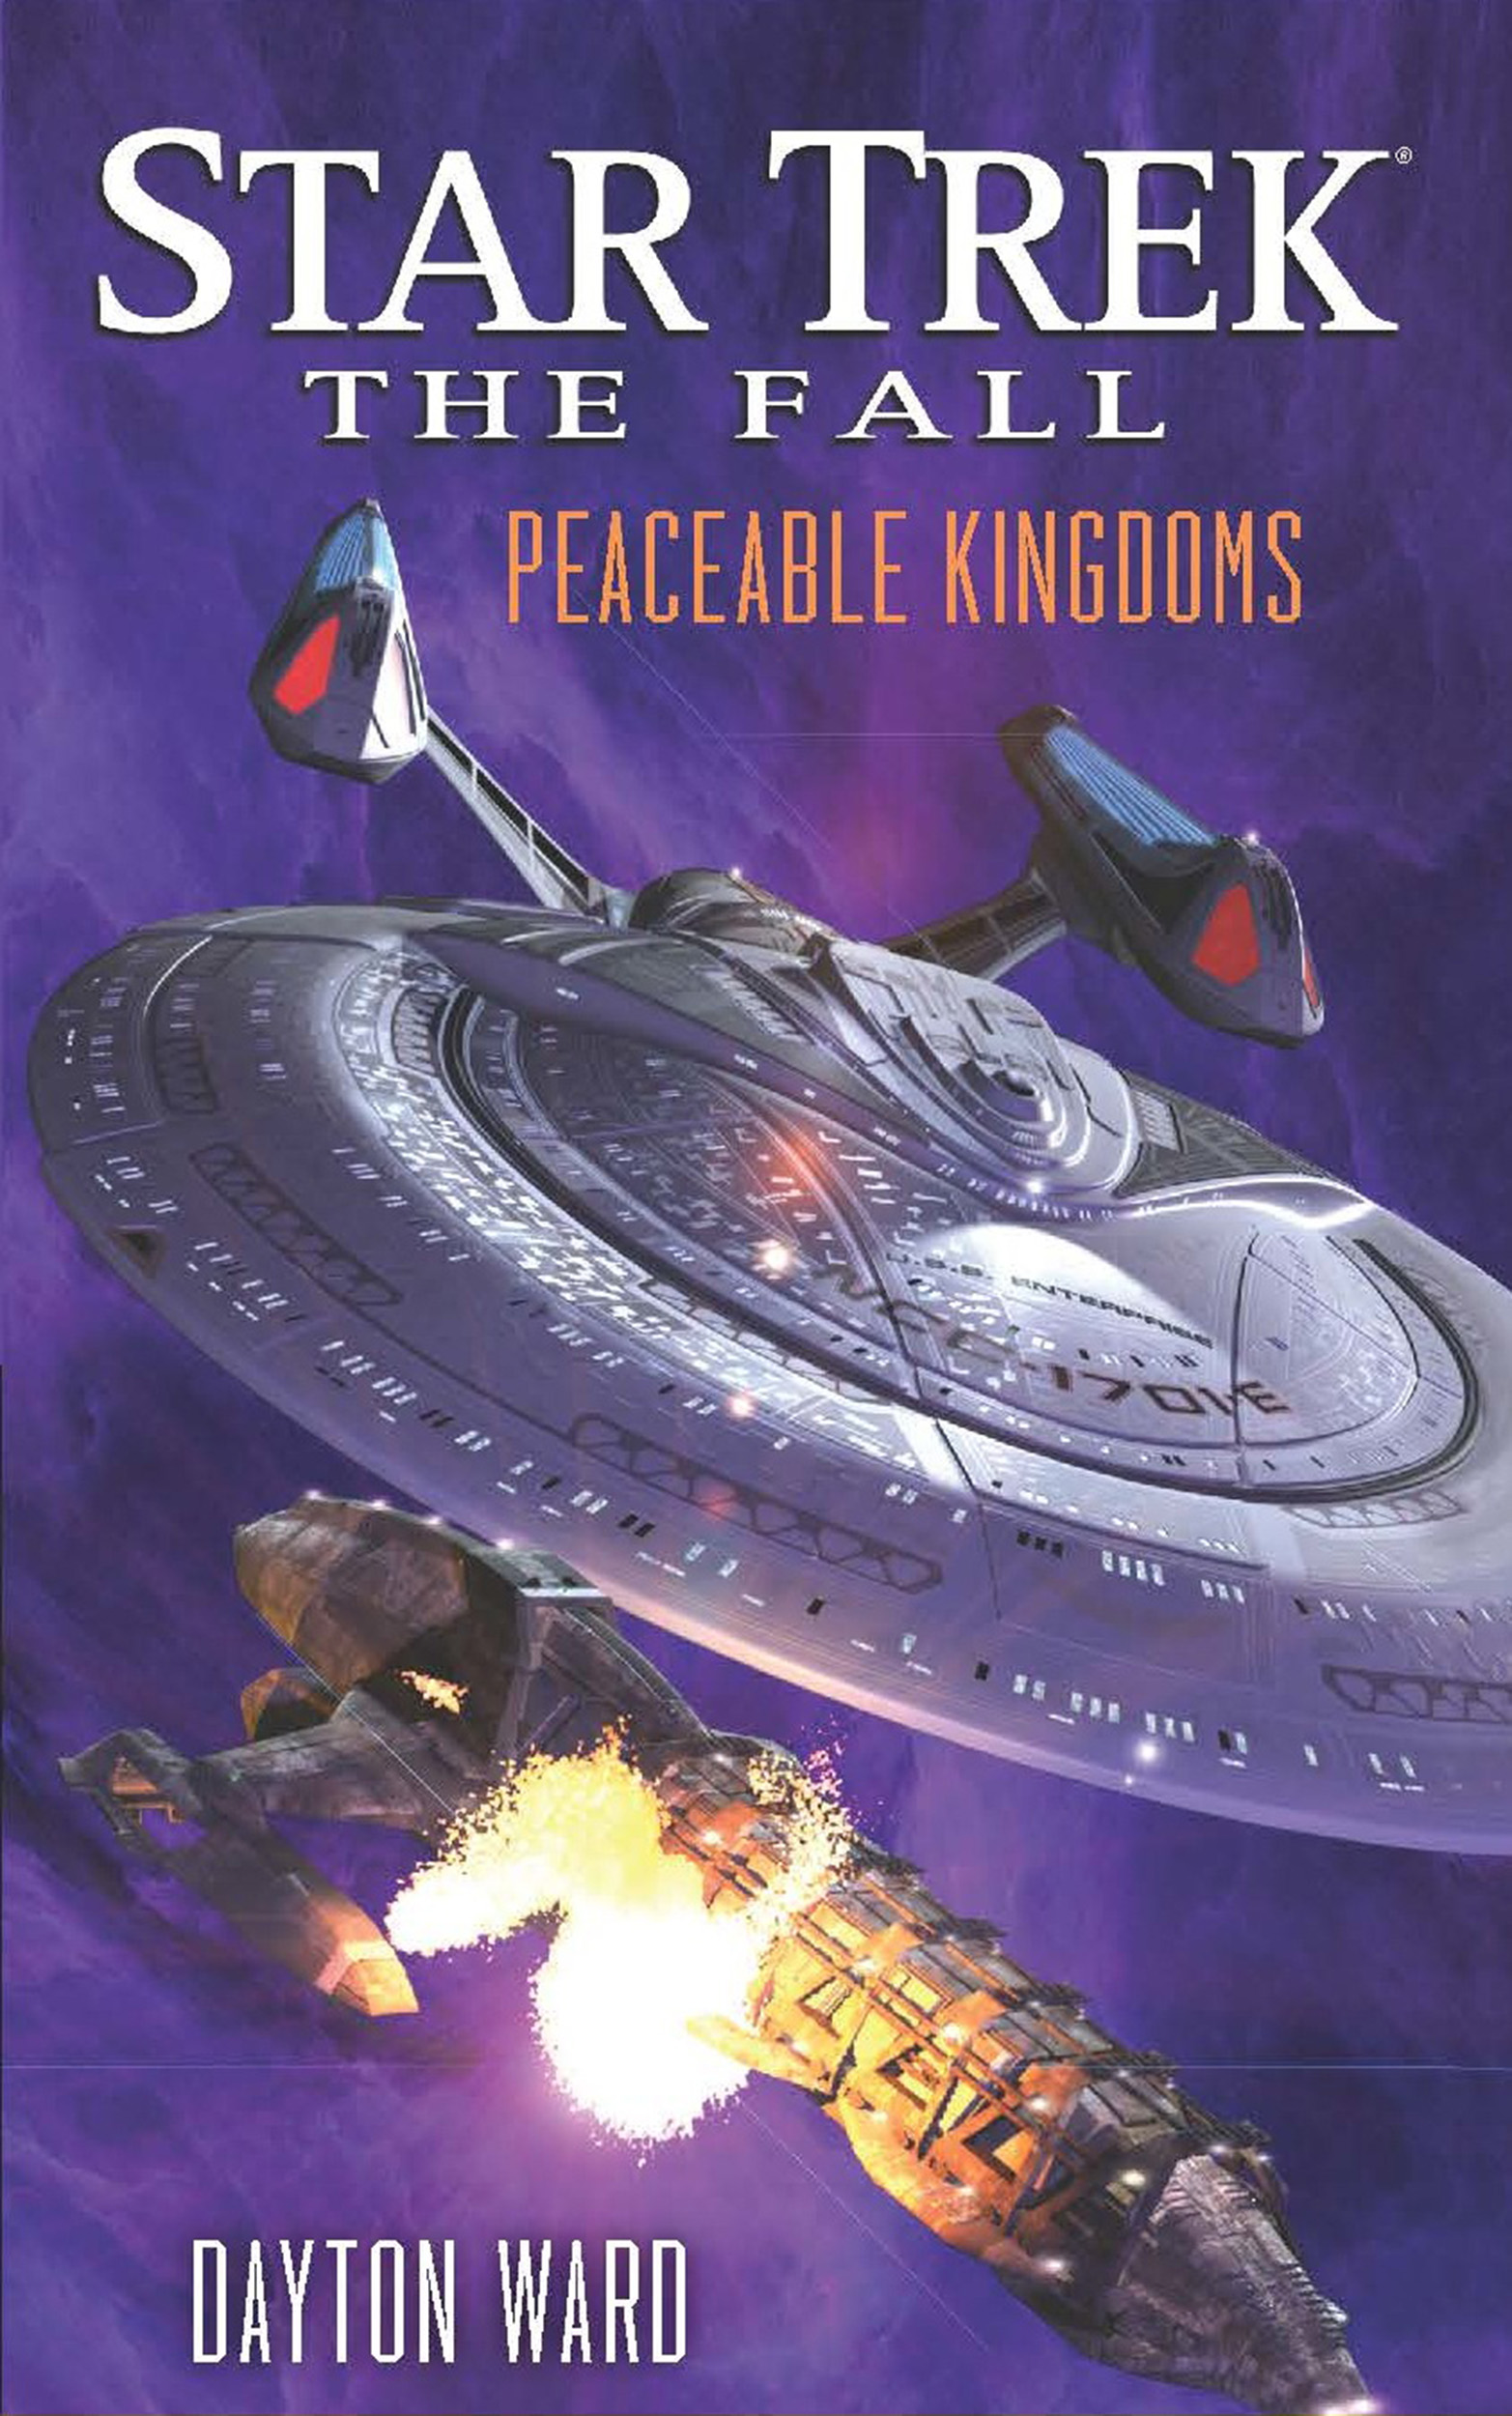 Star-trek-the-fall-peaceable-kingdoms-9781476718996_hr